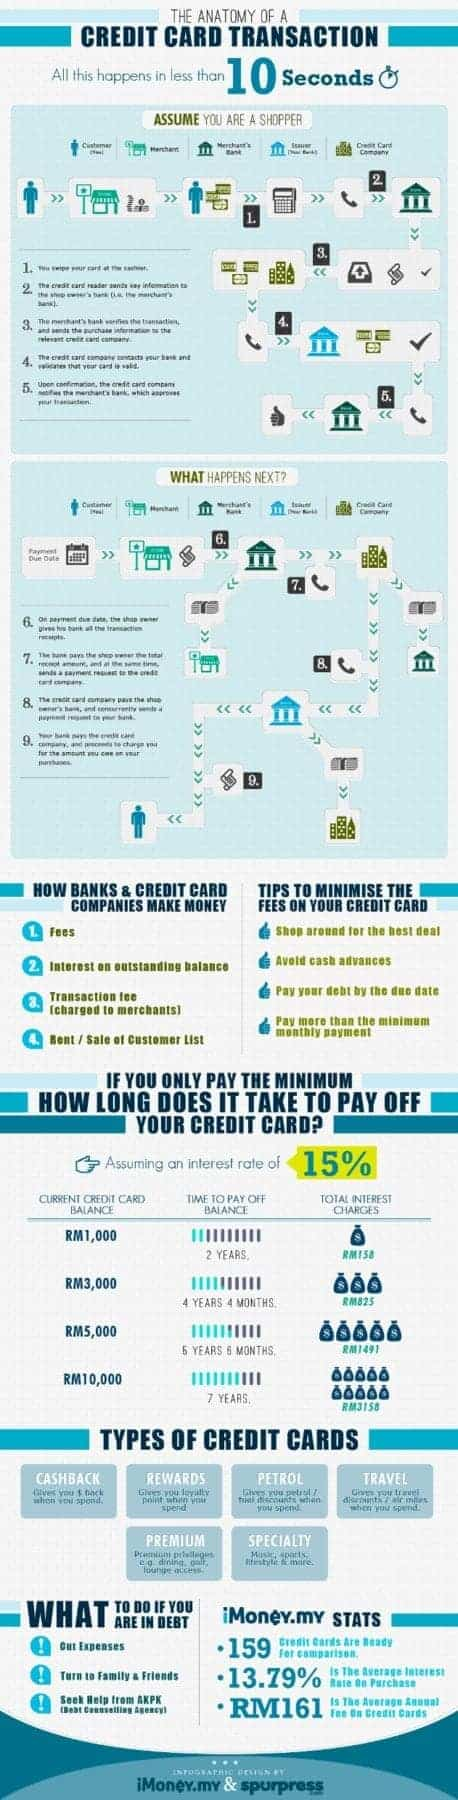 The-Anatomy-Of-A-Credit-Card-Transaction